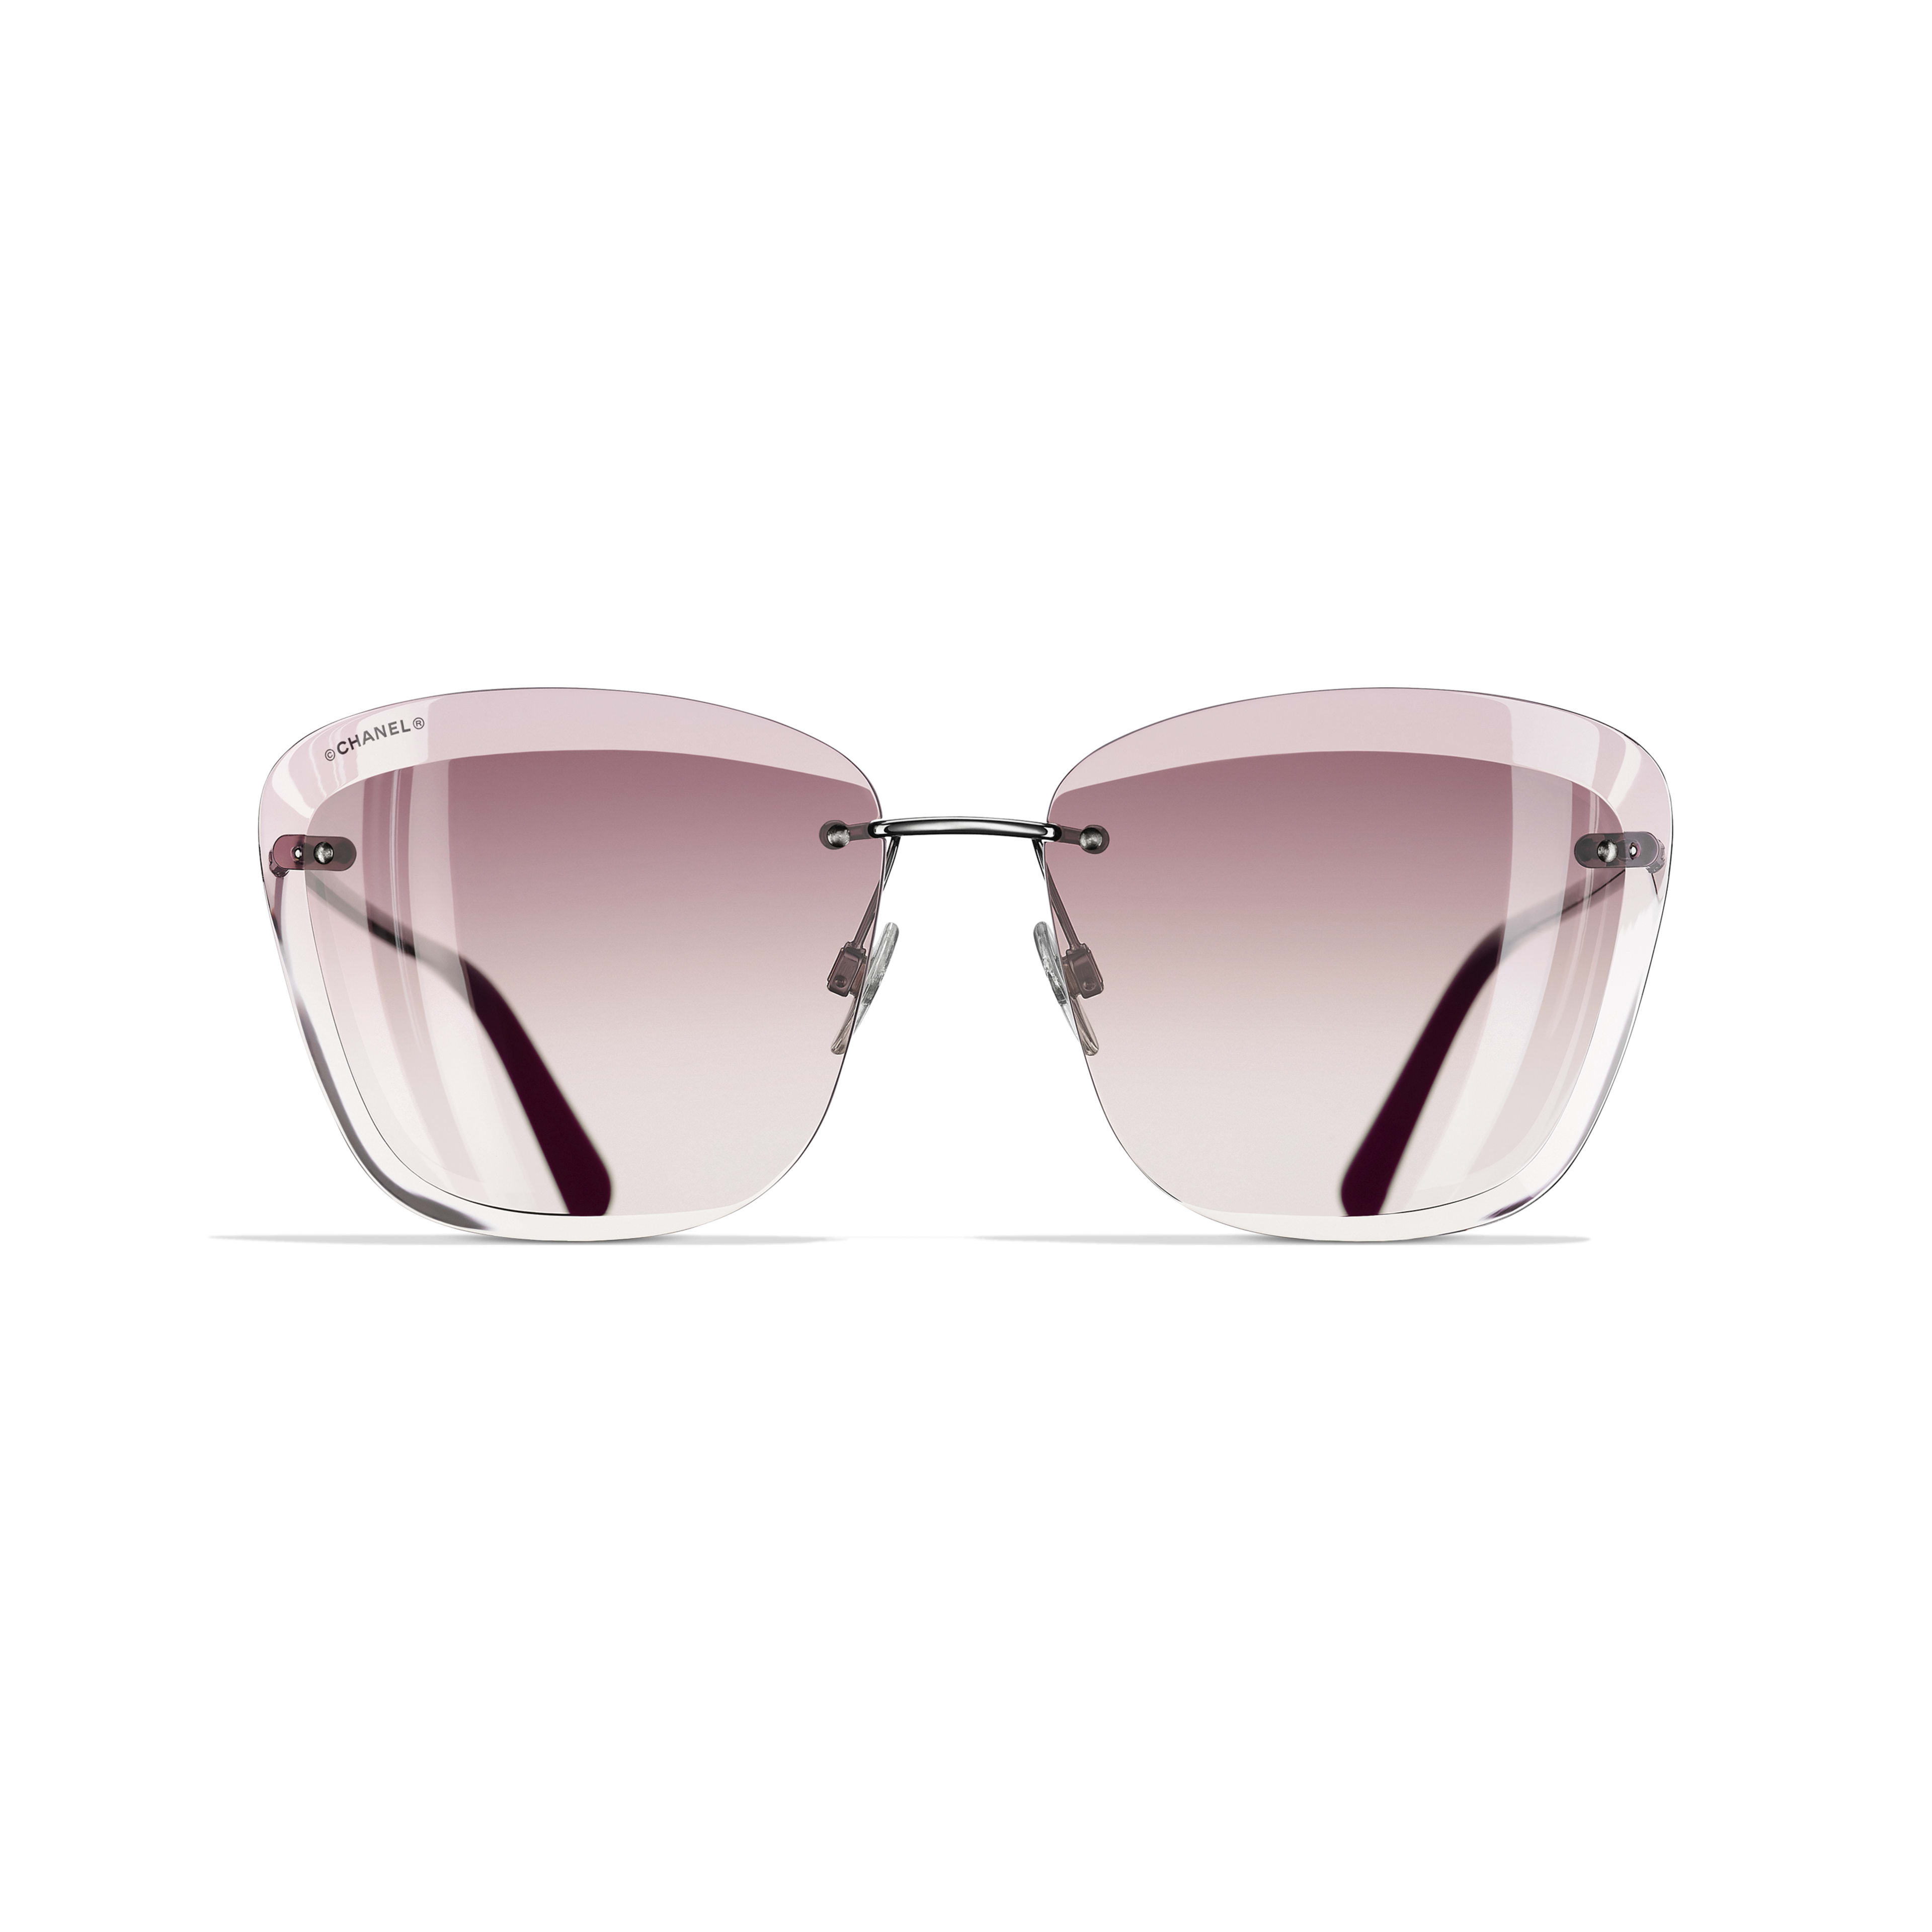 Butterfly Sunglasses Metal Silver & Pink -                                                    view 2 - see full sized version